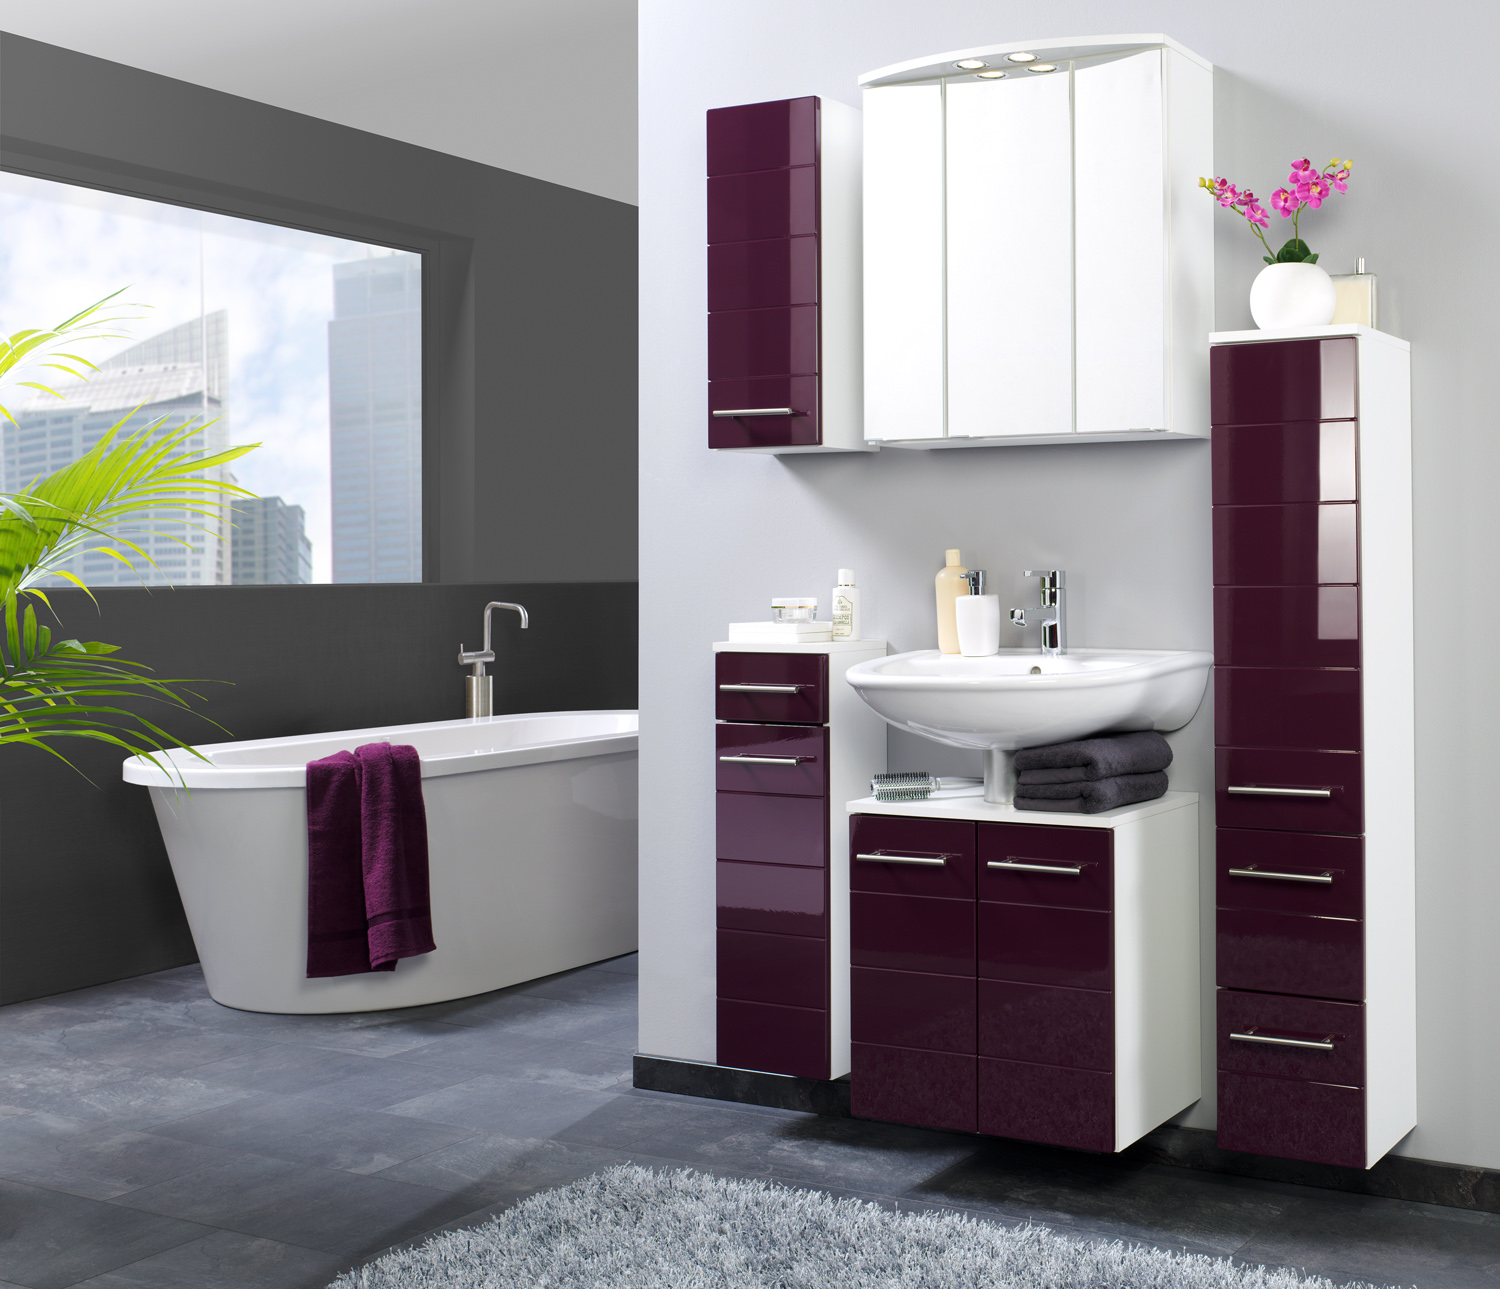 h ngeschrank 25 rimini von held m bel aubergine hgl weiss. Black Bedroom Furniture Sets. Home Design Ideas